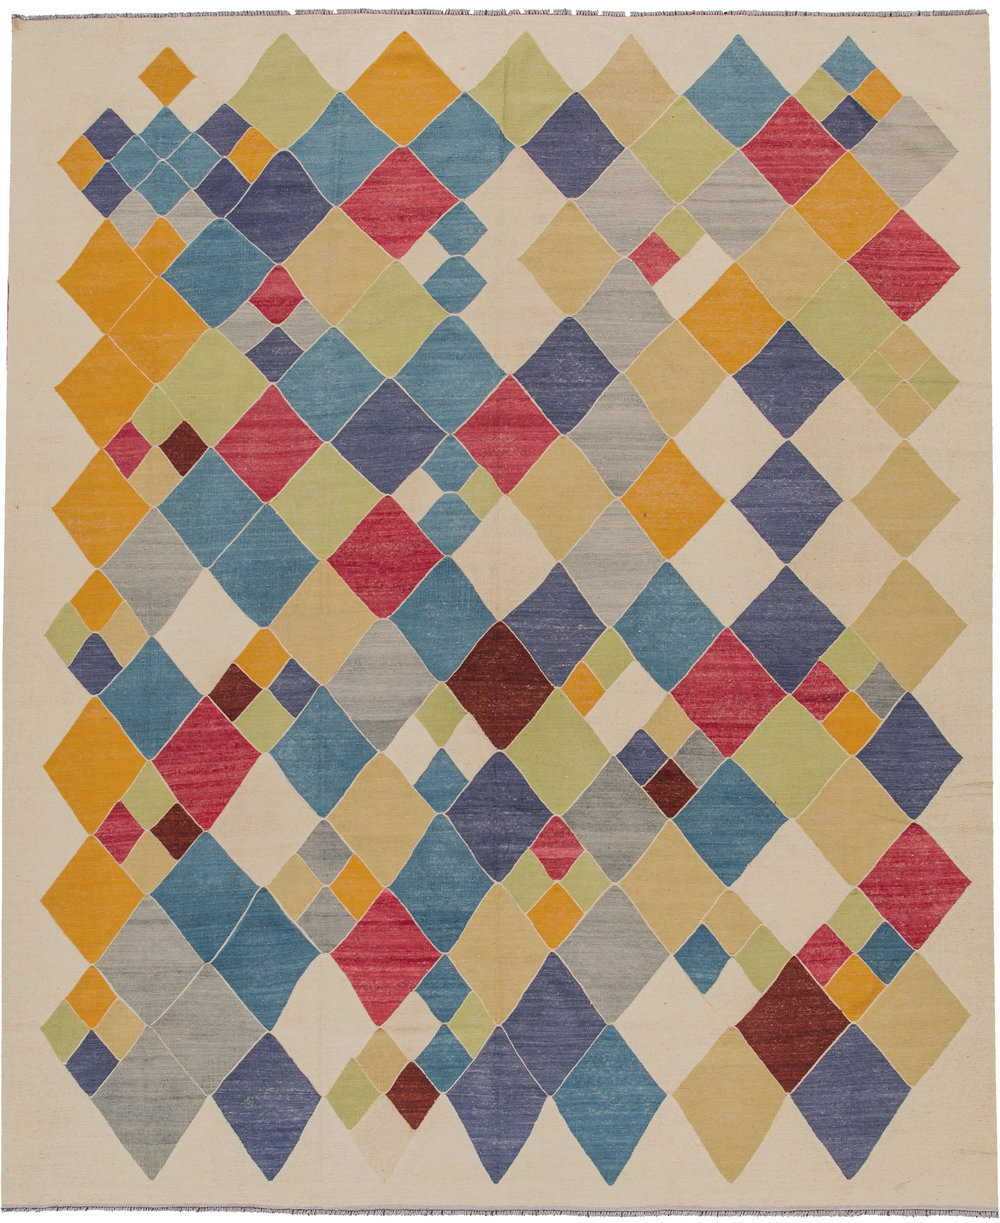 Clowning Around - Kilim Weave, Multi Checkered100% WoolDimensions: 9' x 12'Price: $5,980.00